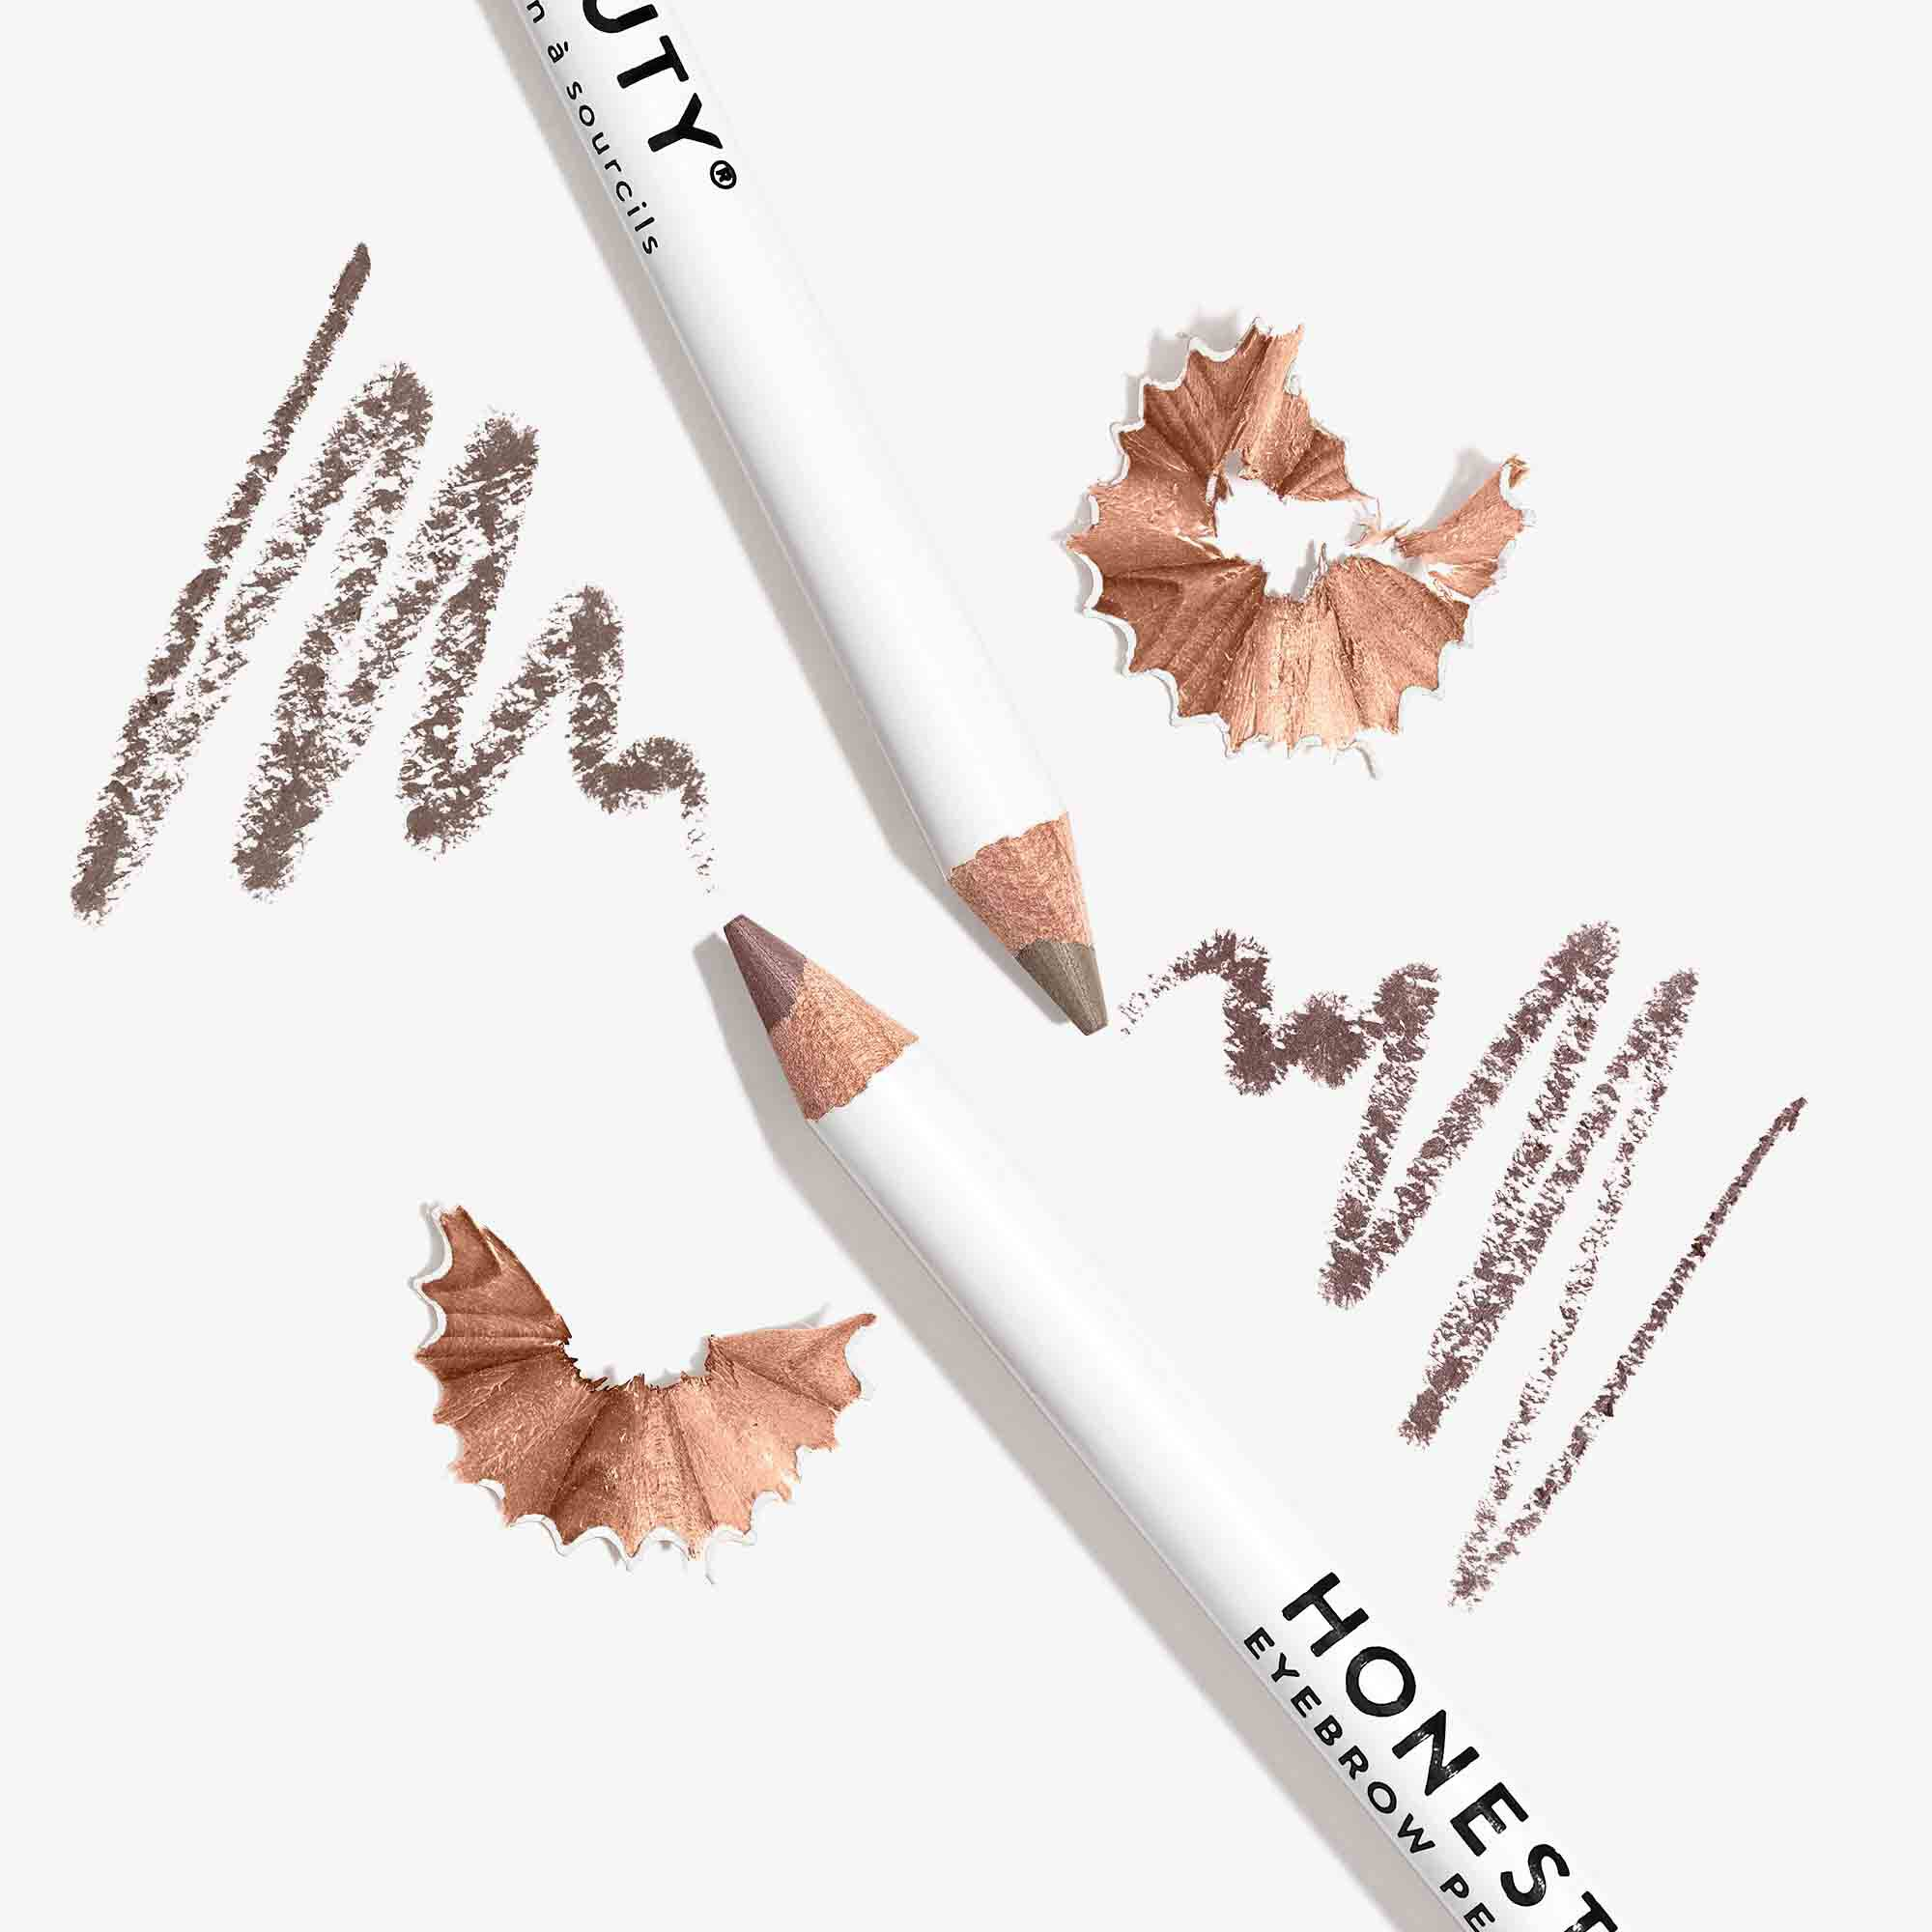 eyebrow pencils in both taupe and brown